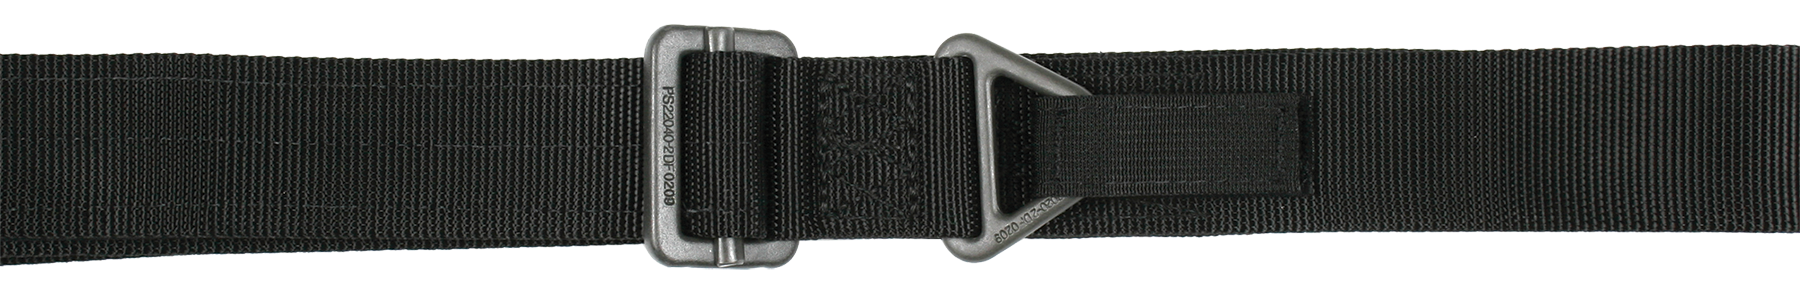 BLACKHAWK!® CQB Riggers Belt - Medium - Up to 41